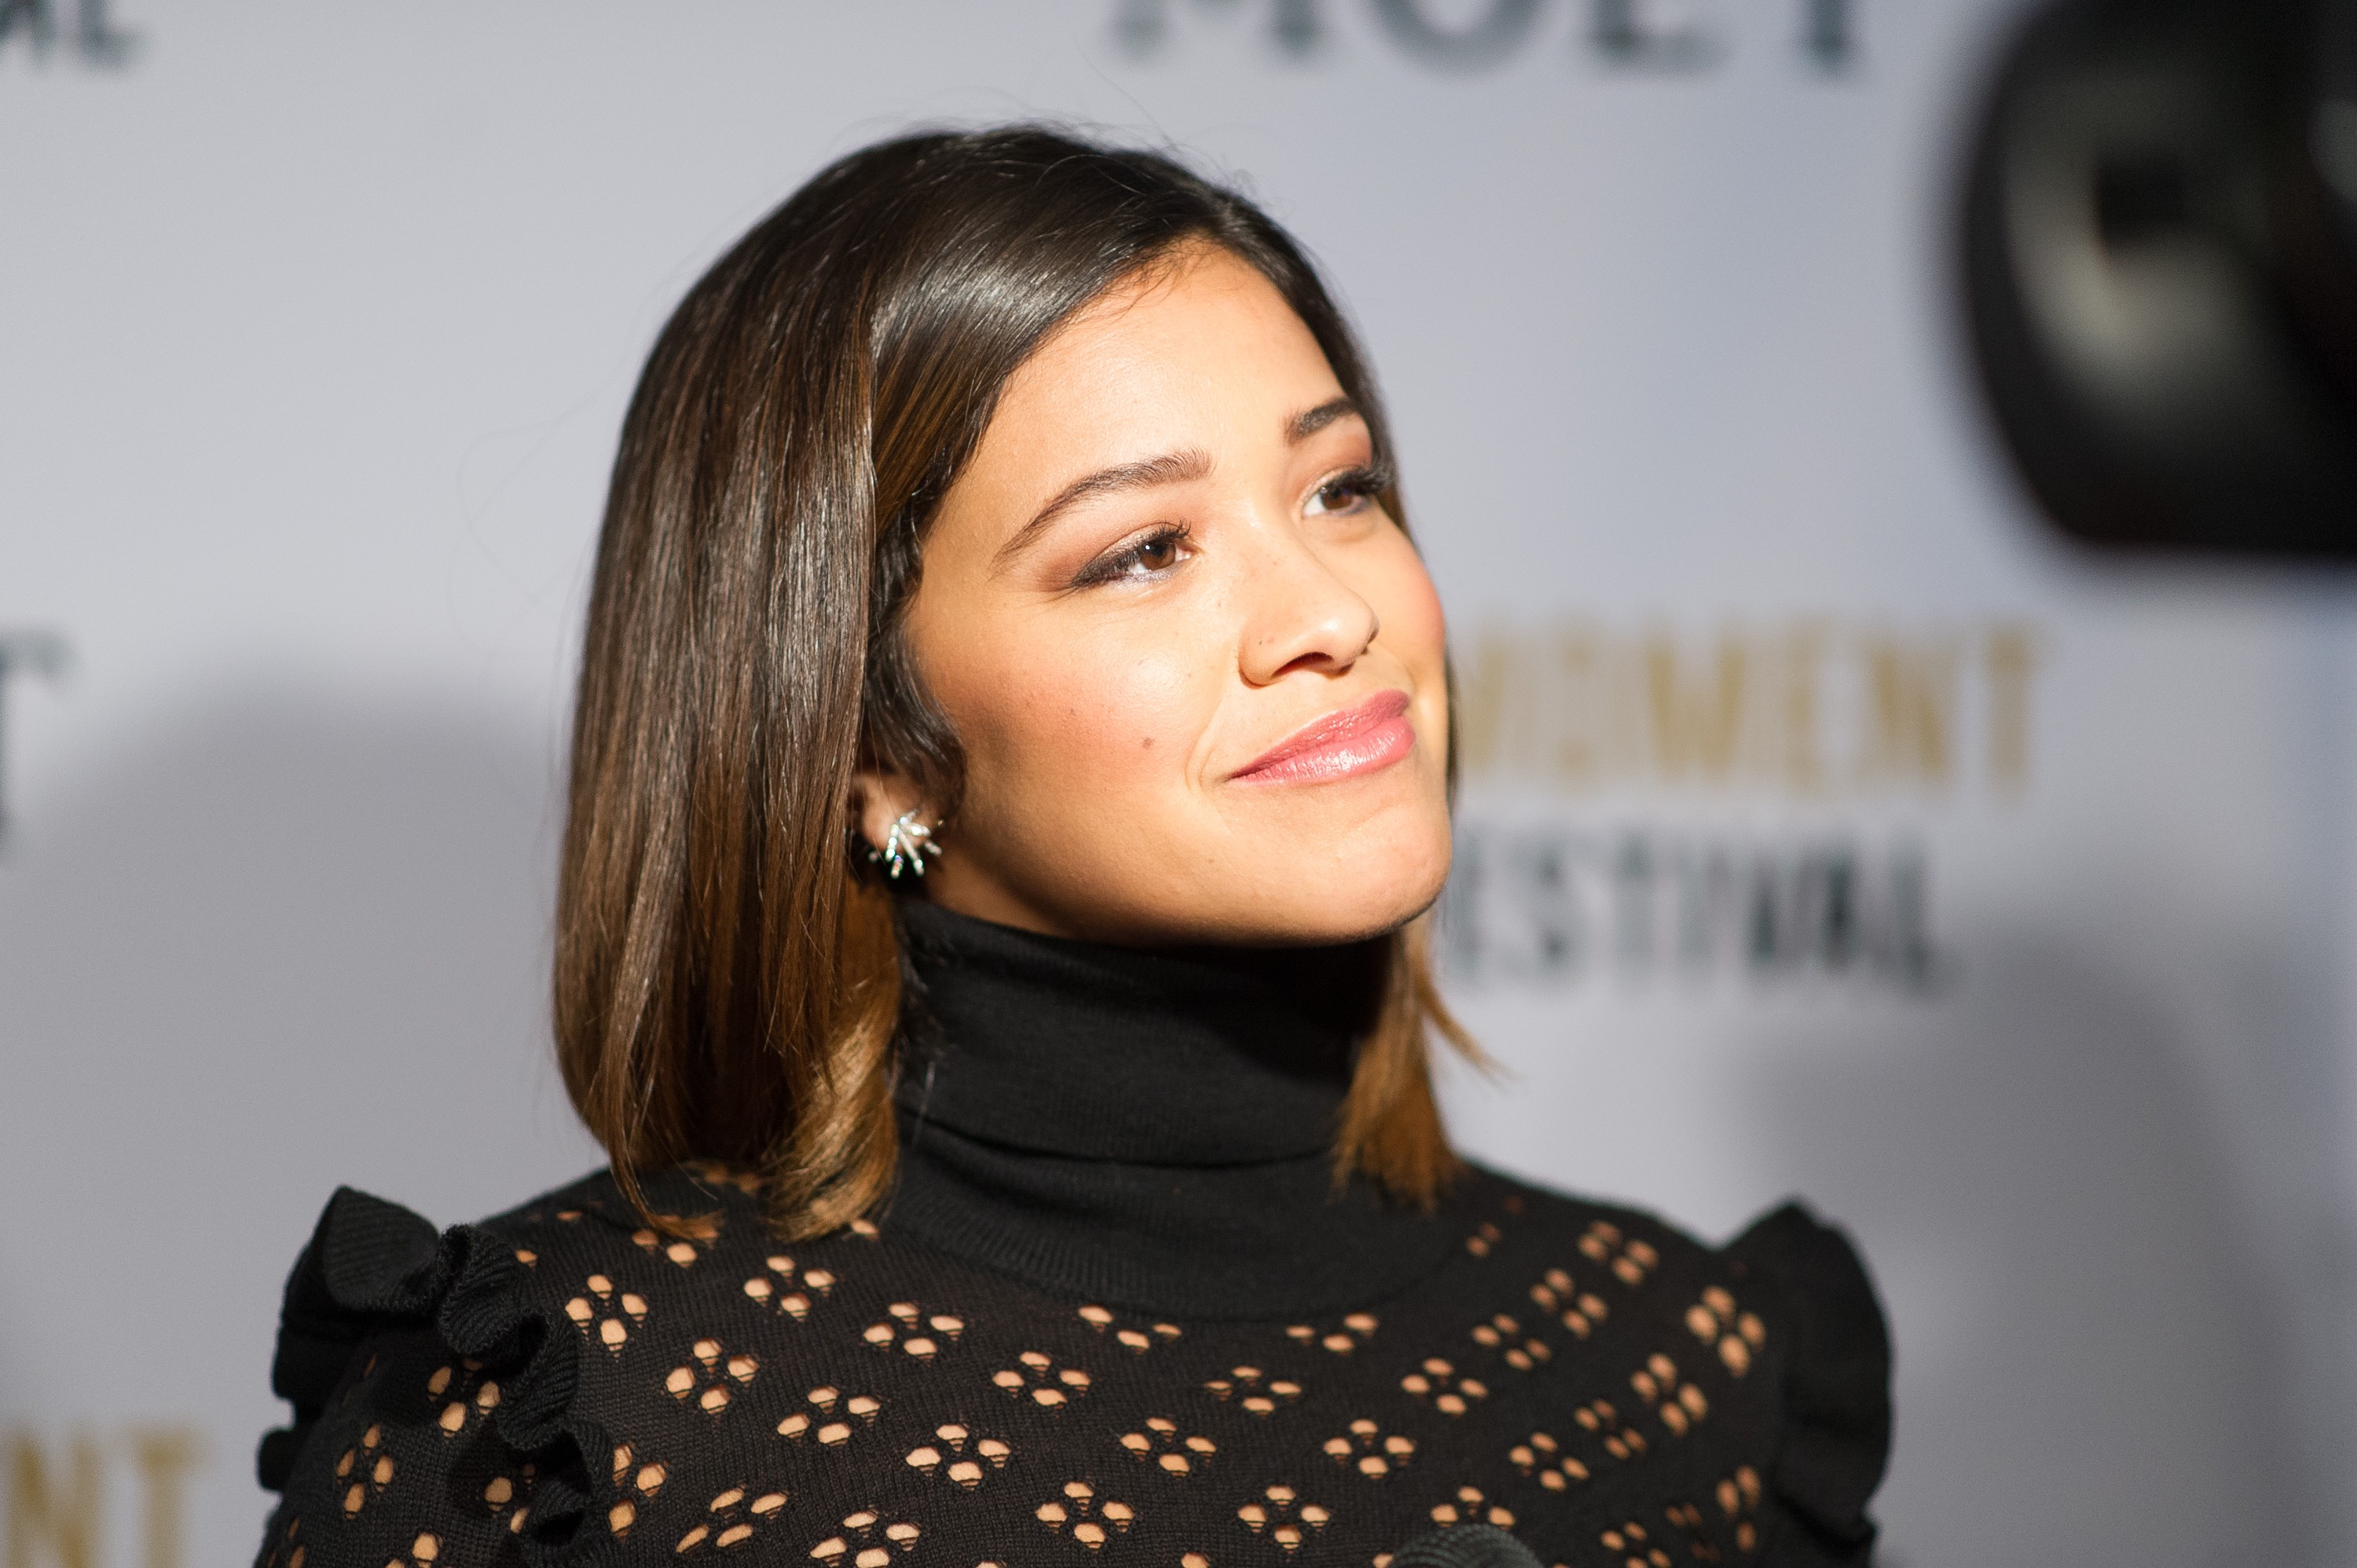 Gina Rodriguez Producing 'Diary of a Female President' Disney Series Centered on a Cuban-American Girl